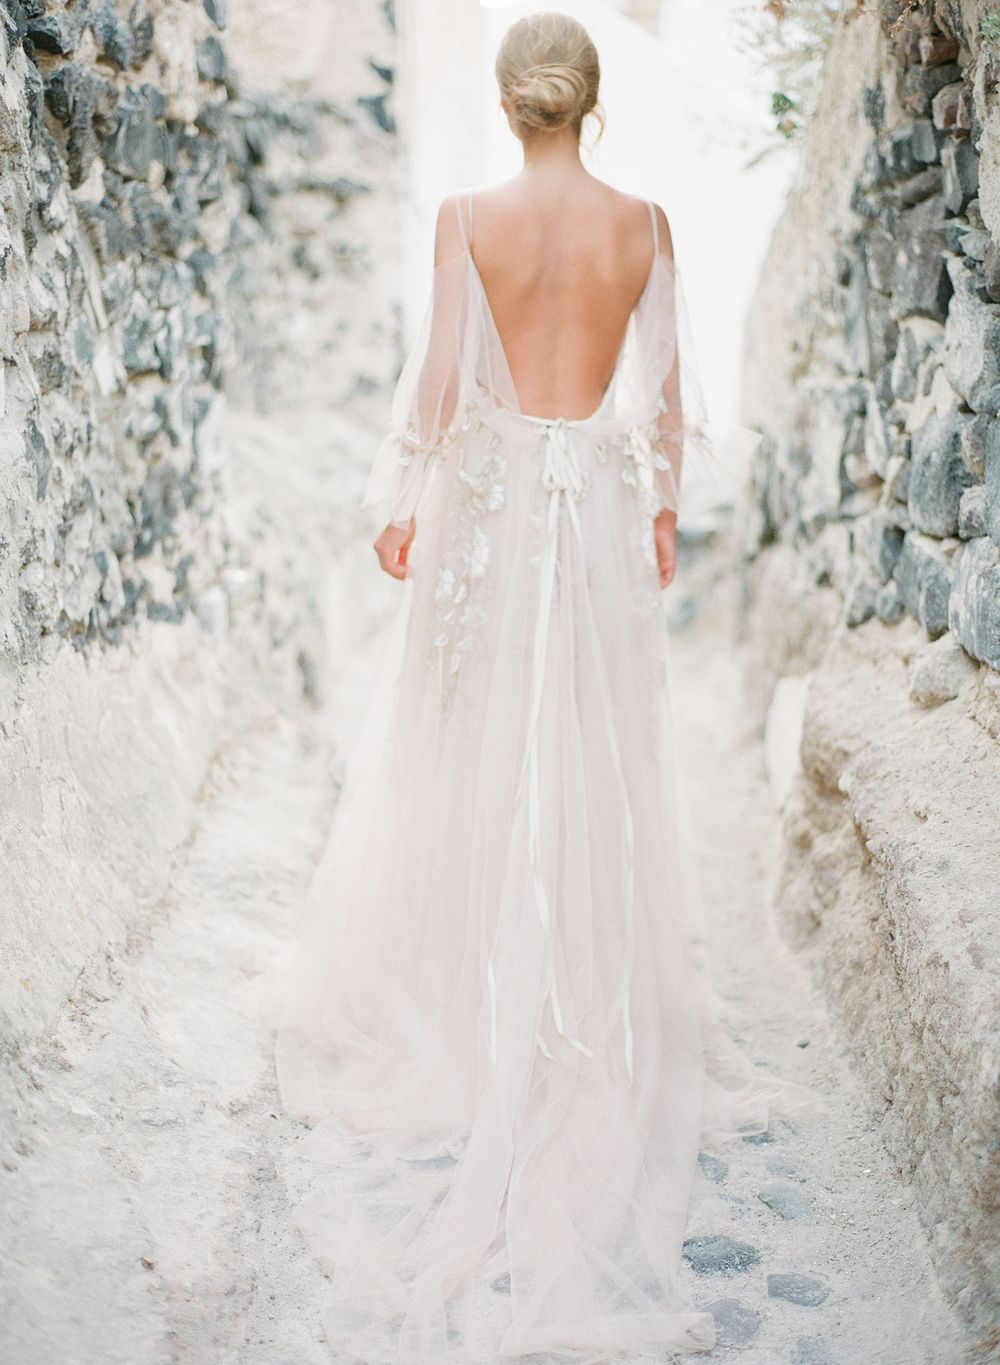 Angelic Bridal Session in Greece | *WINTER WEDDING* | Pinterest ...